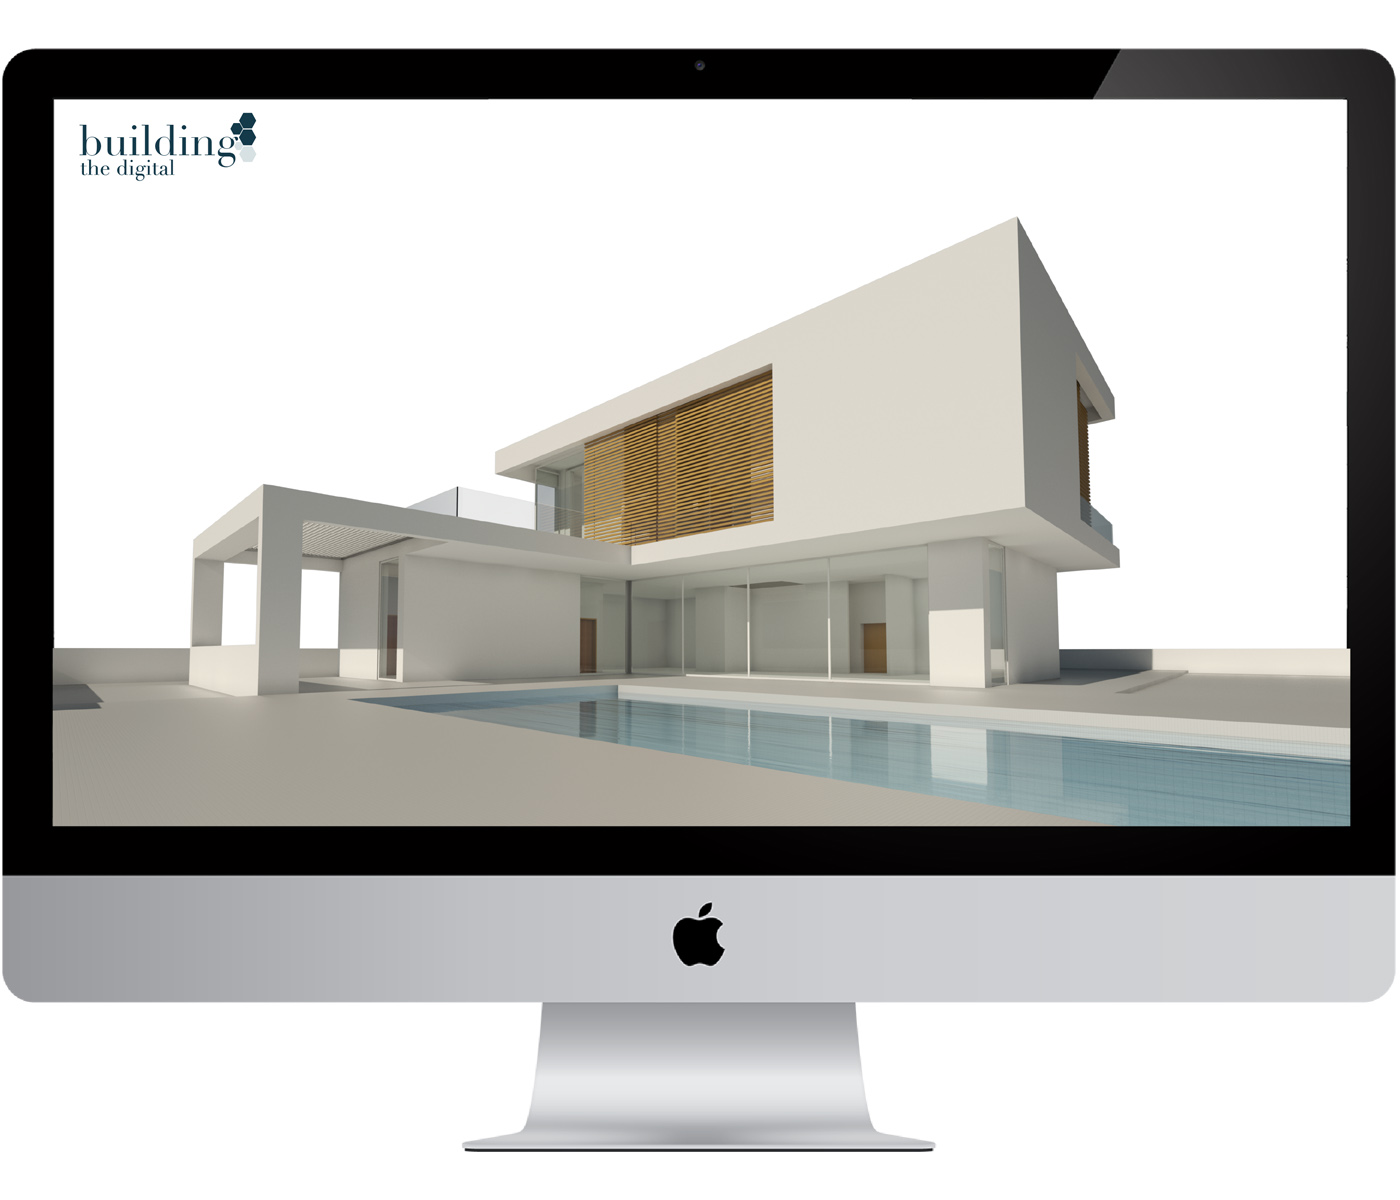 Revit online course - how to start with Building Information Modeling